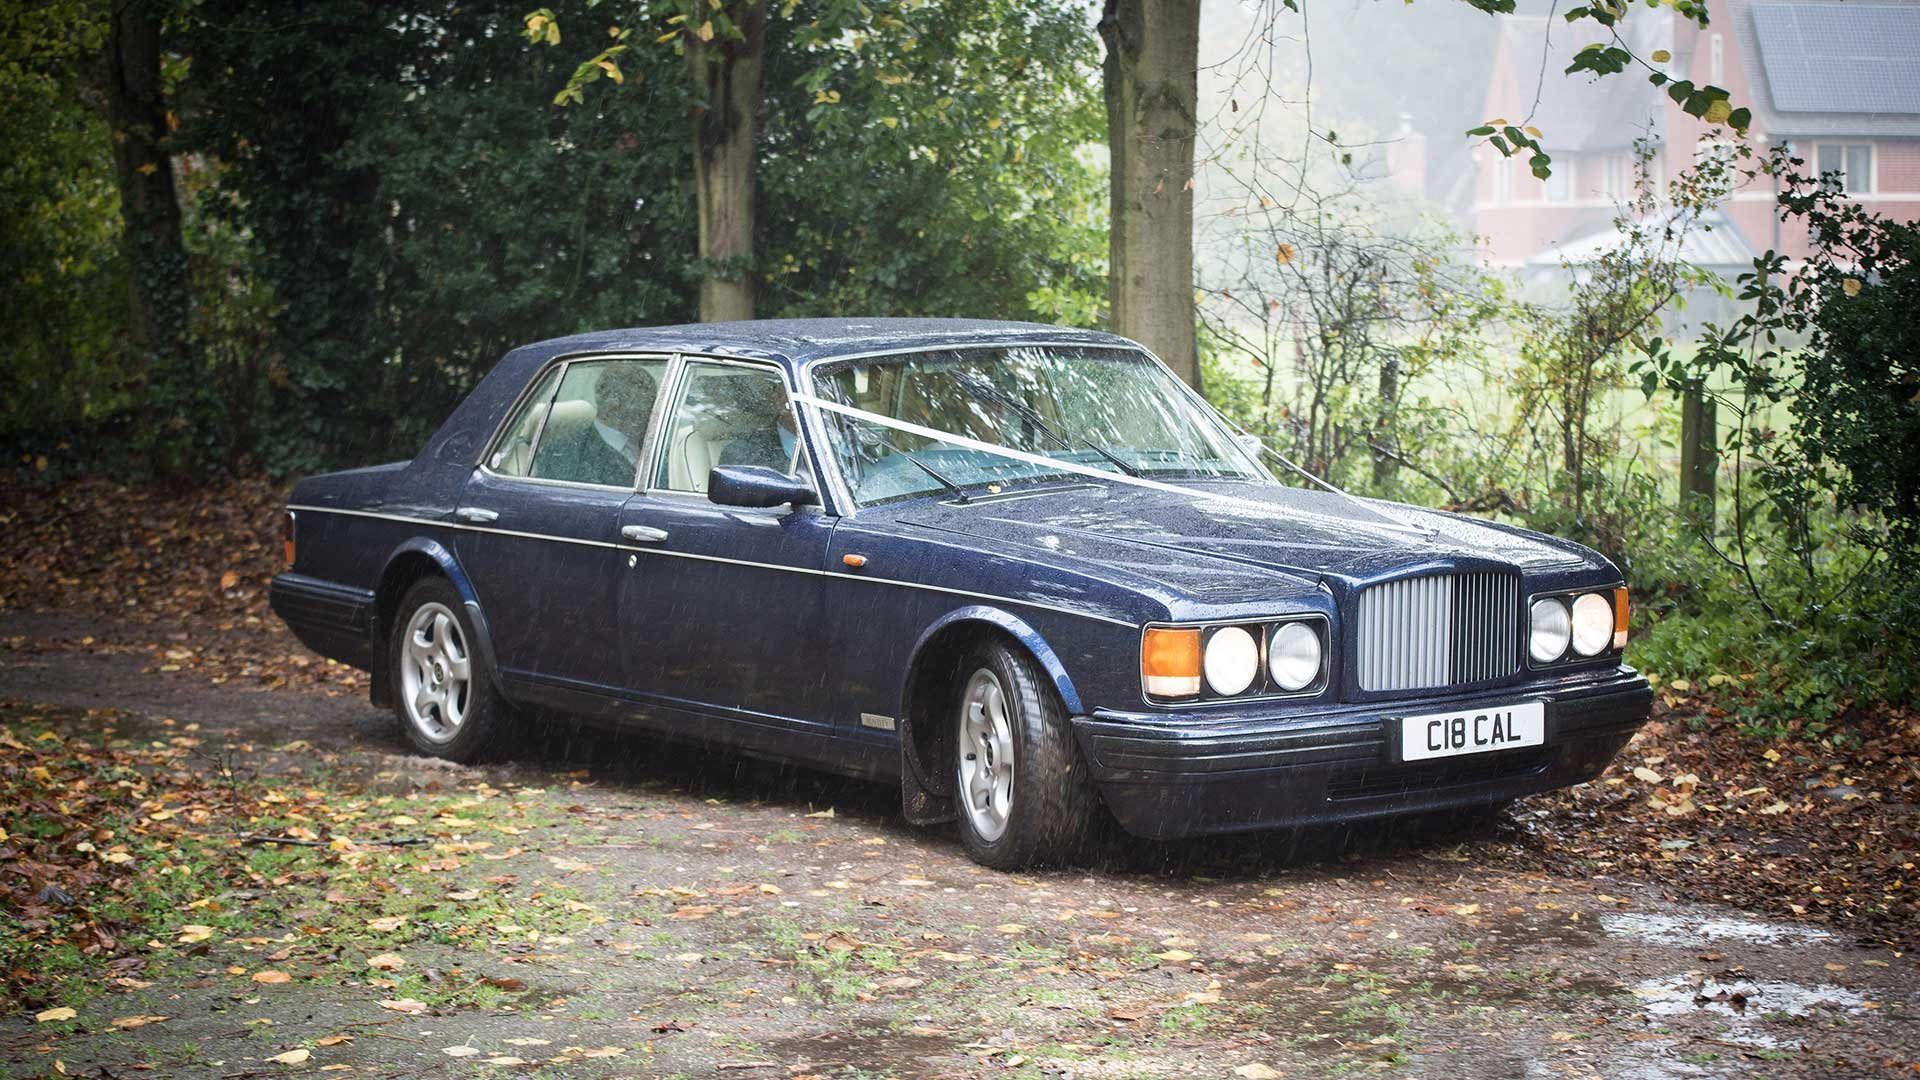 The Bentley Brooklands wedding car in Peacock Blue